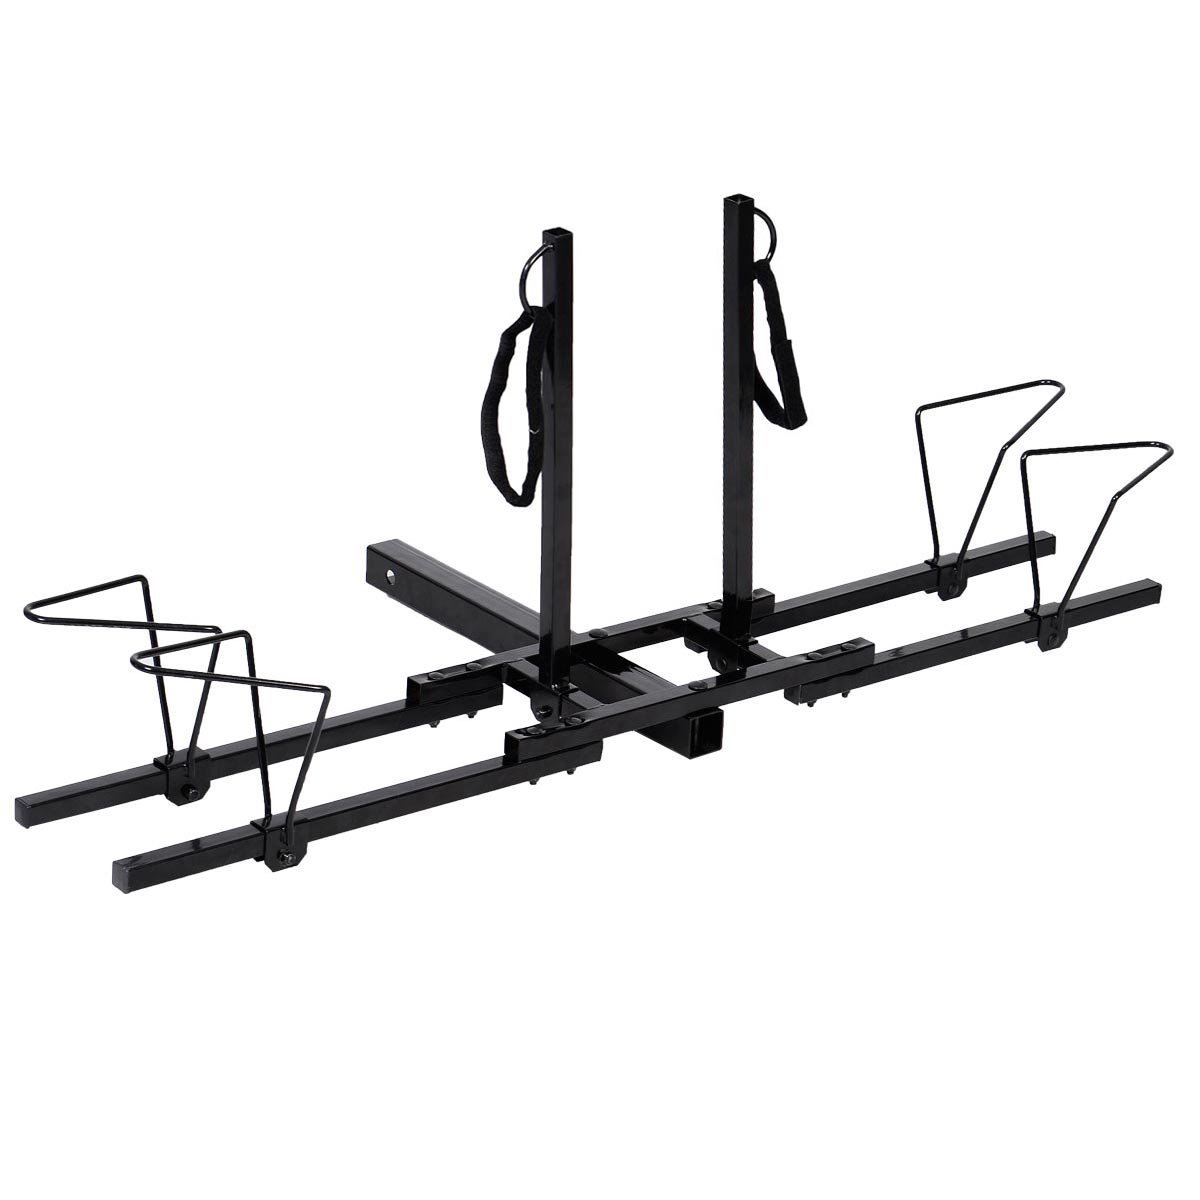 Costway Upright Heavy Duty 2 Bike Bicycle Hitch Mount Carrier Platform Rack Truck SUV by Costway